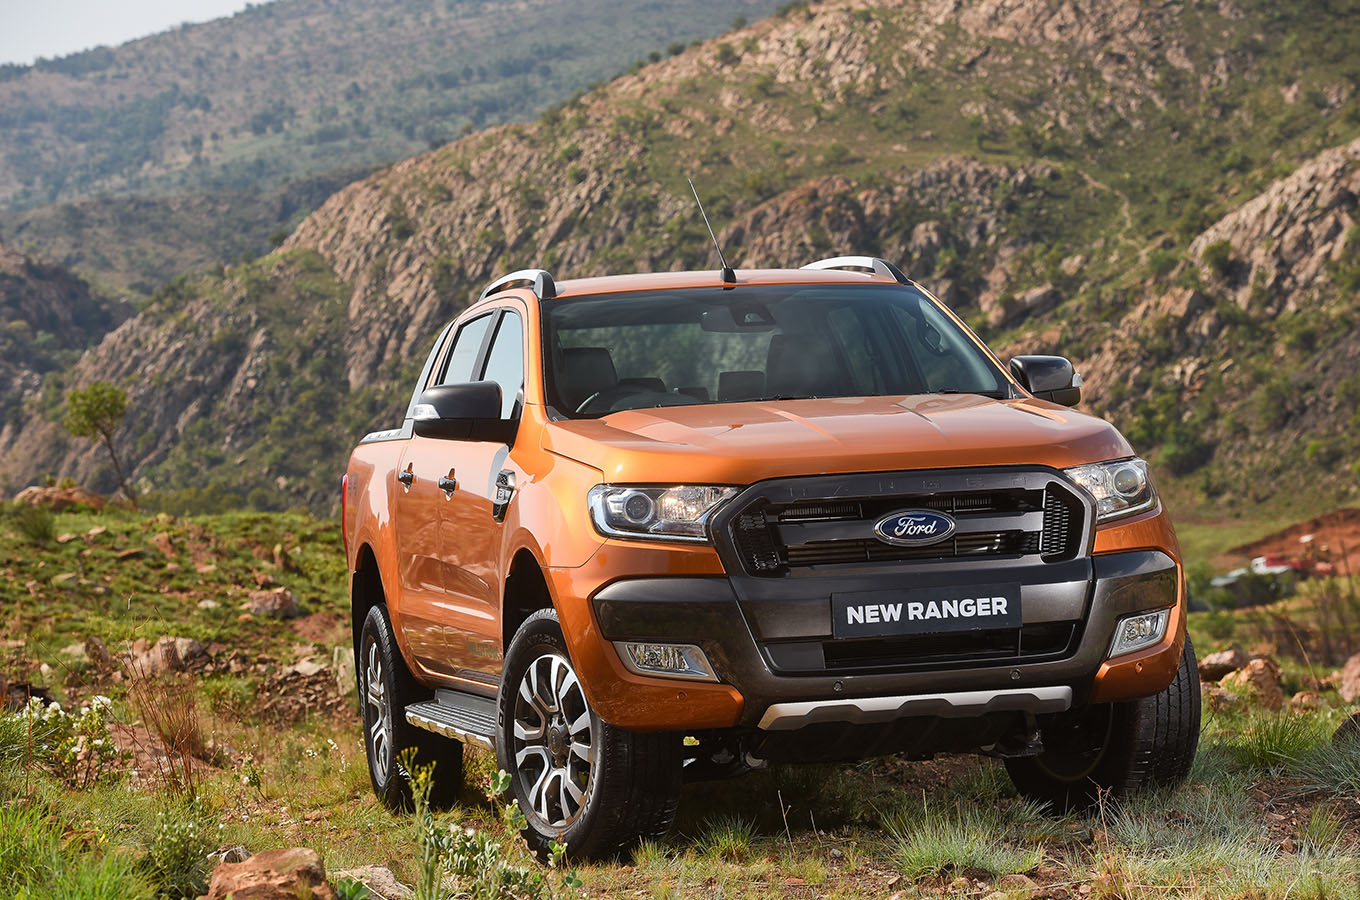 New Ford Ranger - Built to perform